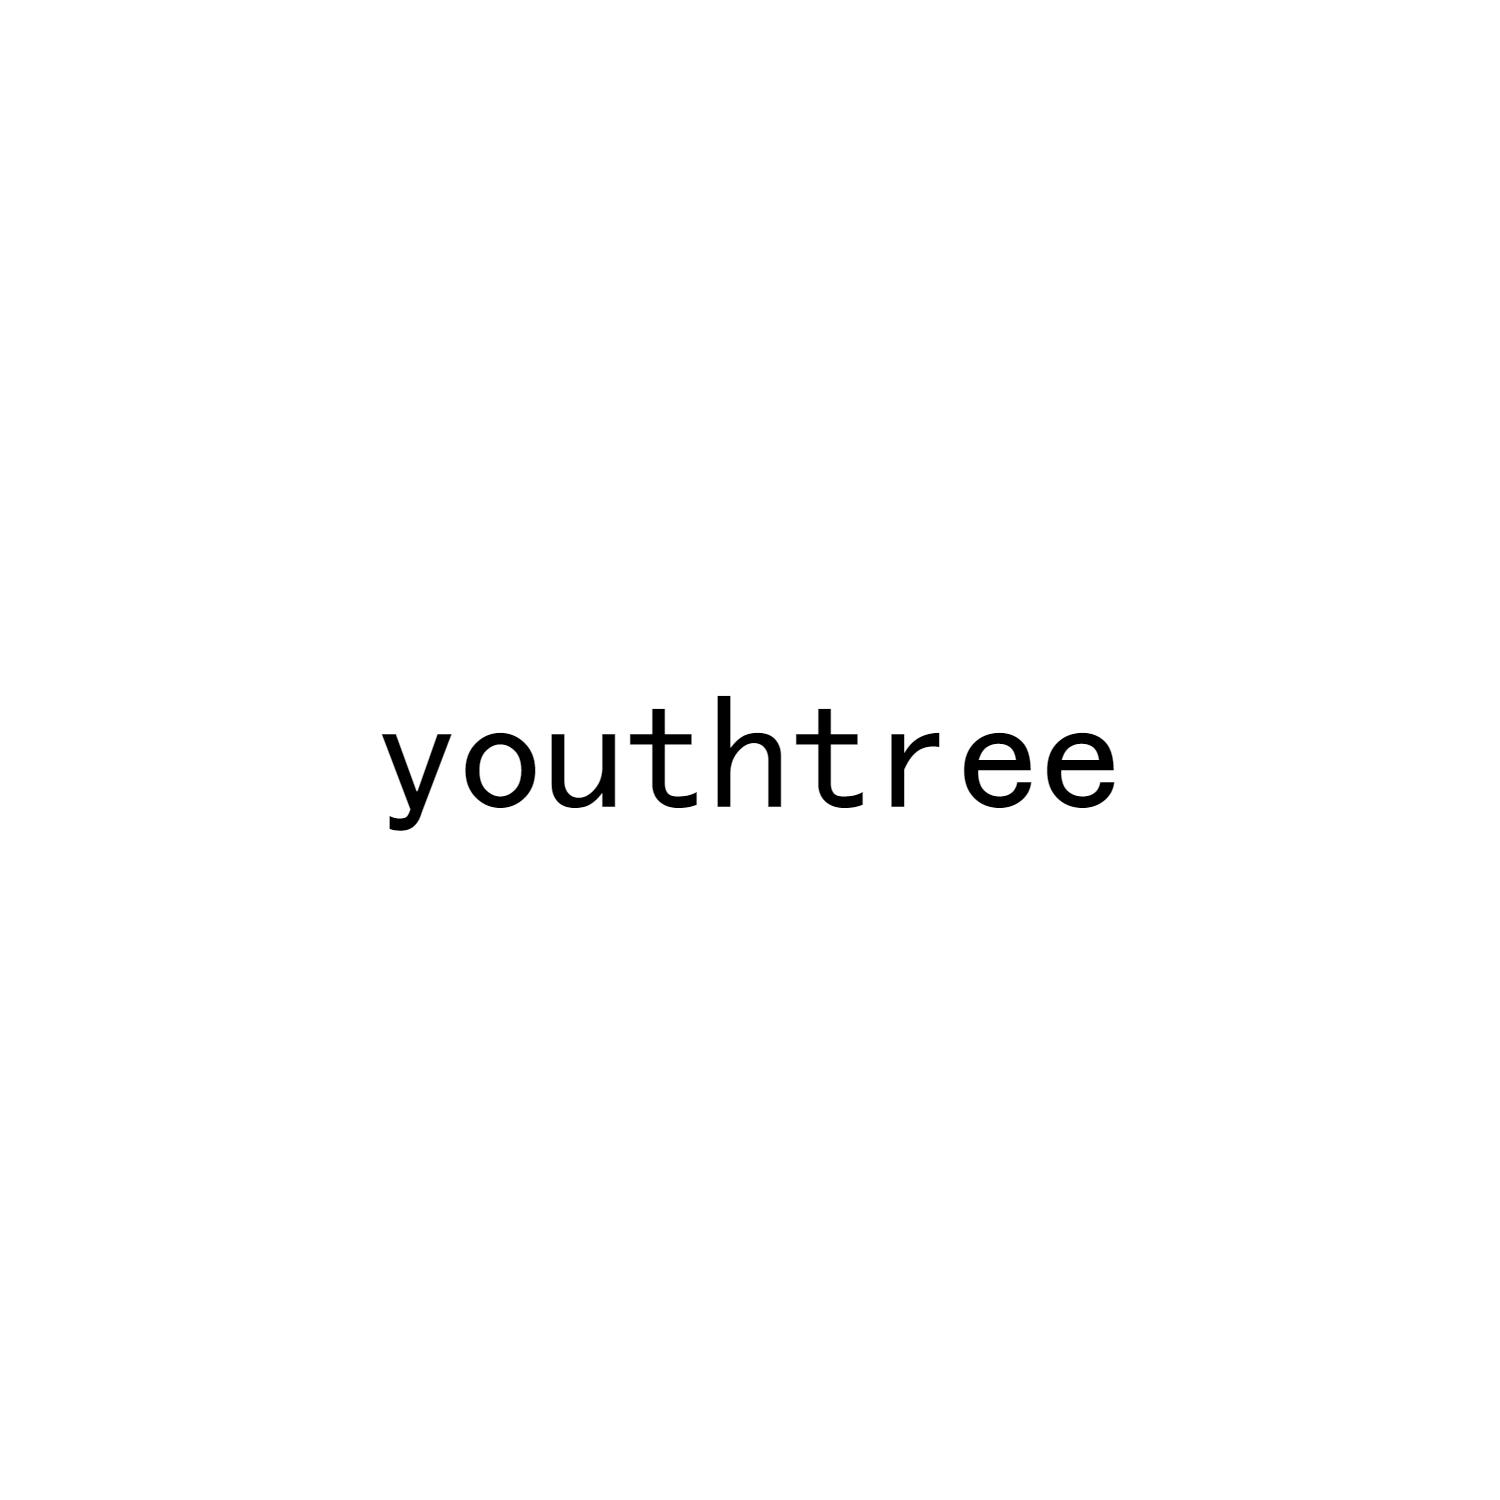 YOUTHTREE